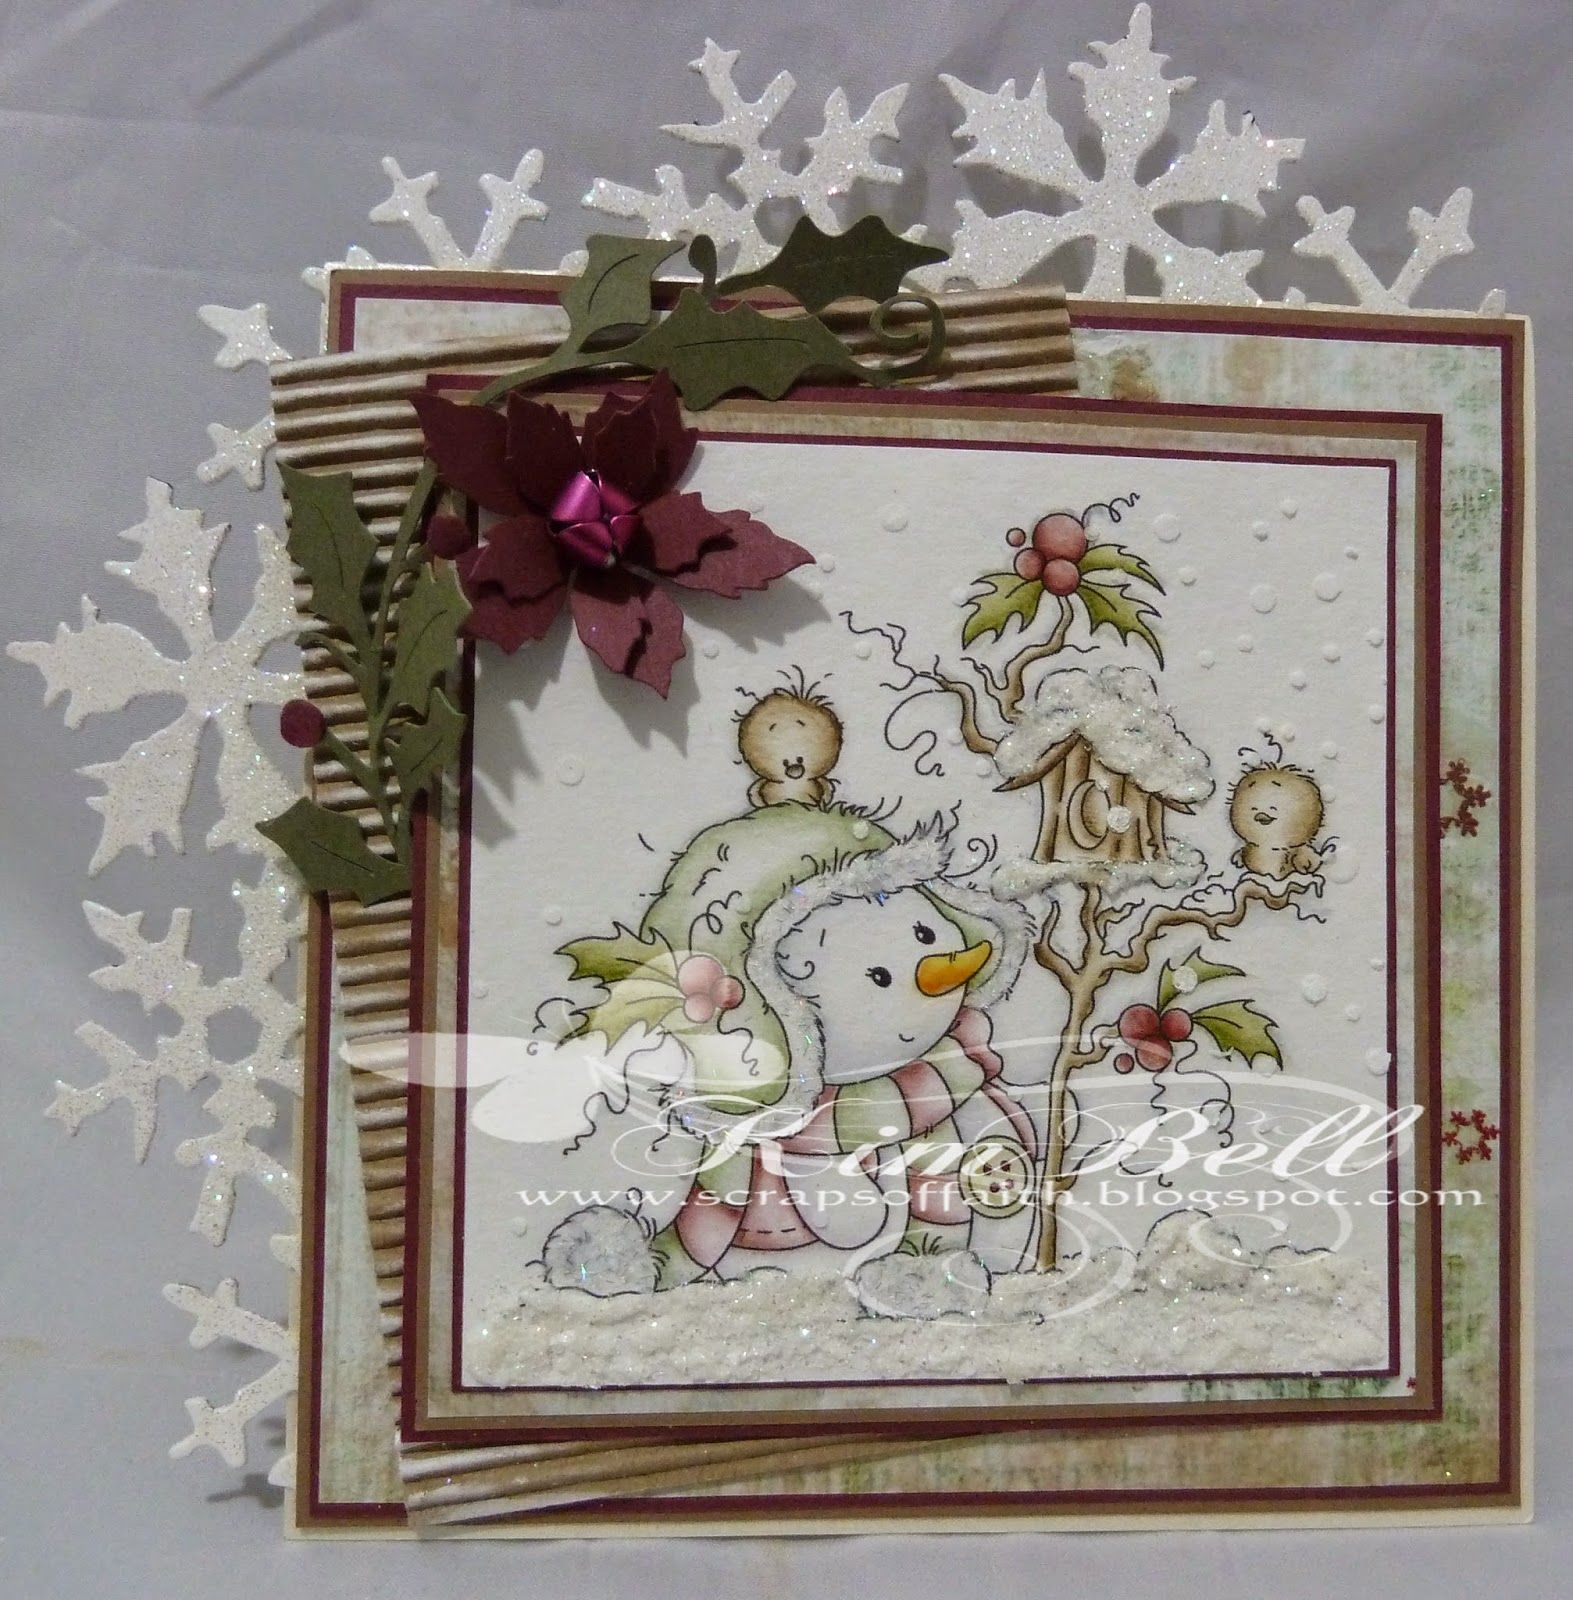 The most beautiful Christmas cards that I have ever seen - each one ...